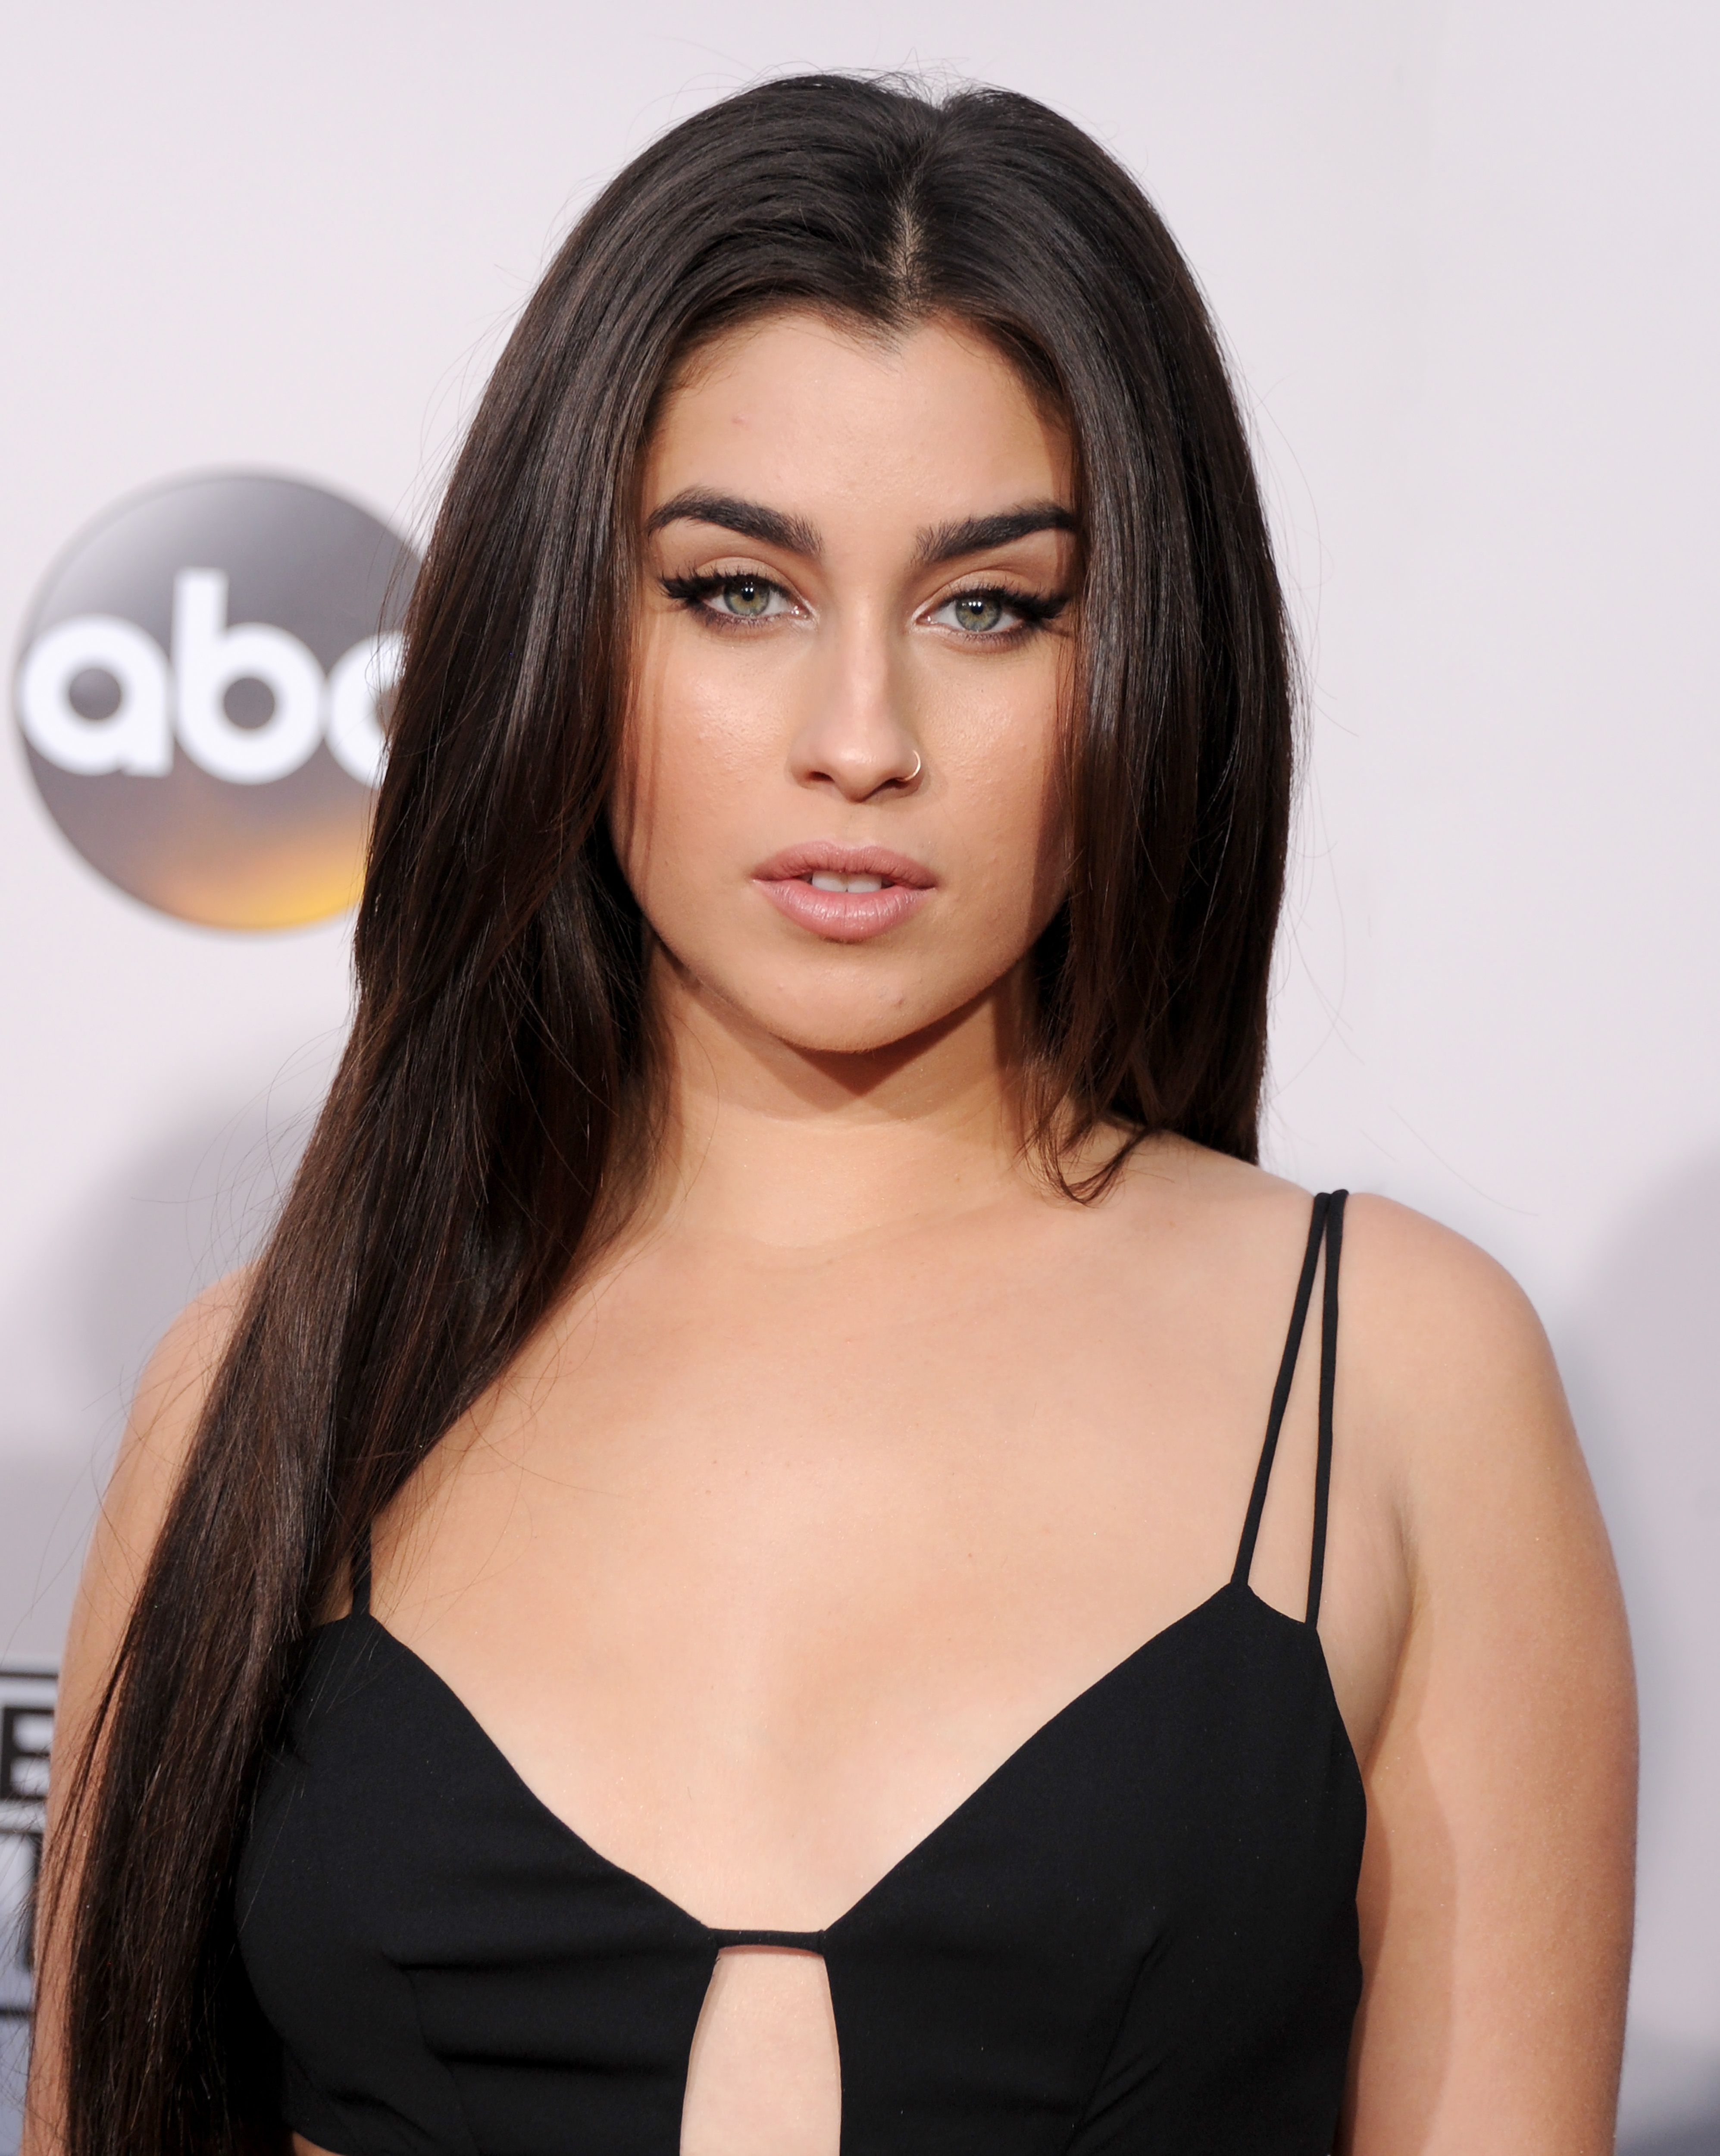 Leaked Lauren Jauregui nudes (57 photos), Topless, Cleavage, Selfie, cleavage 2018